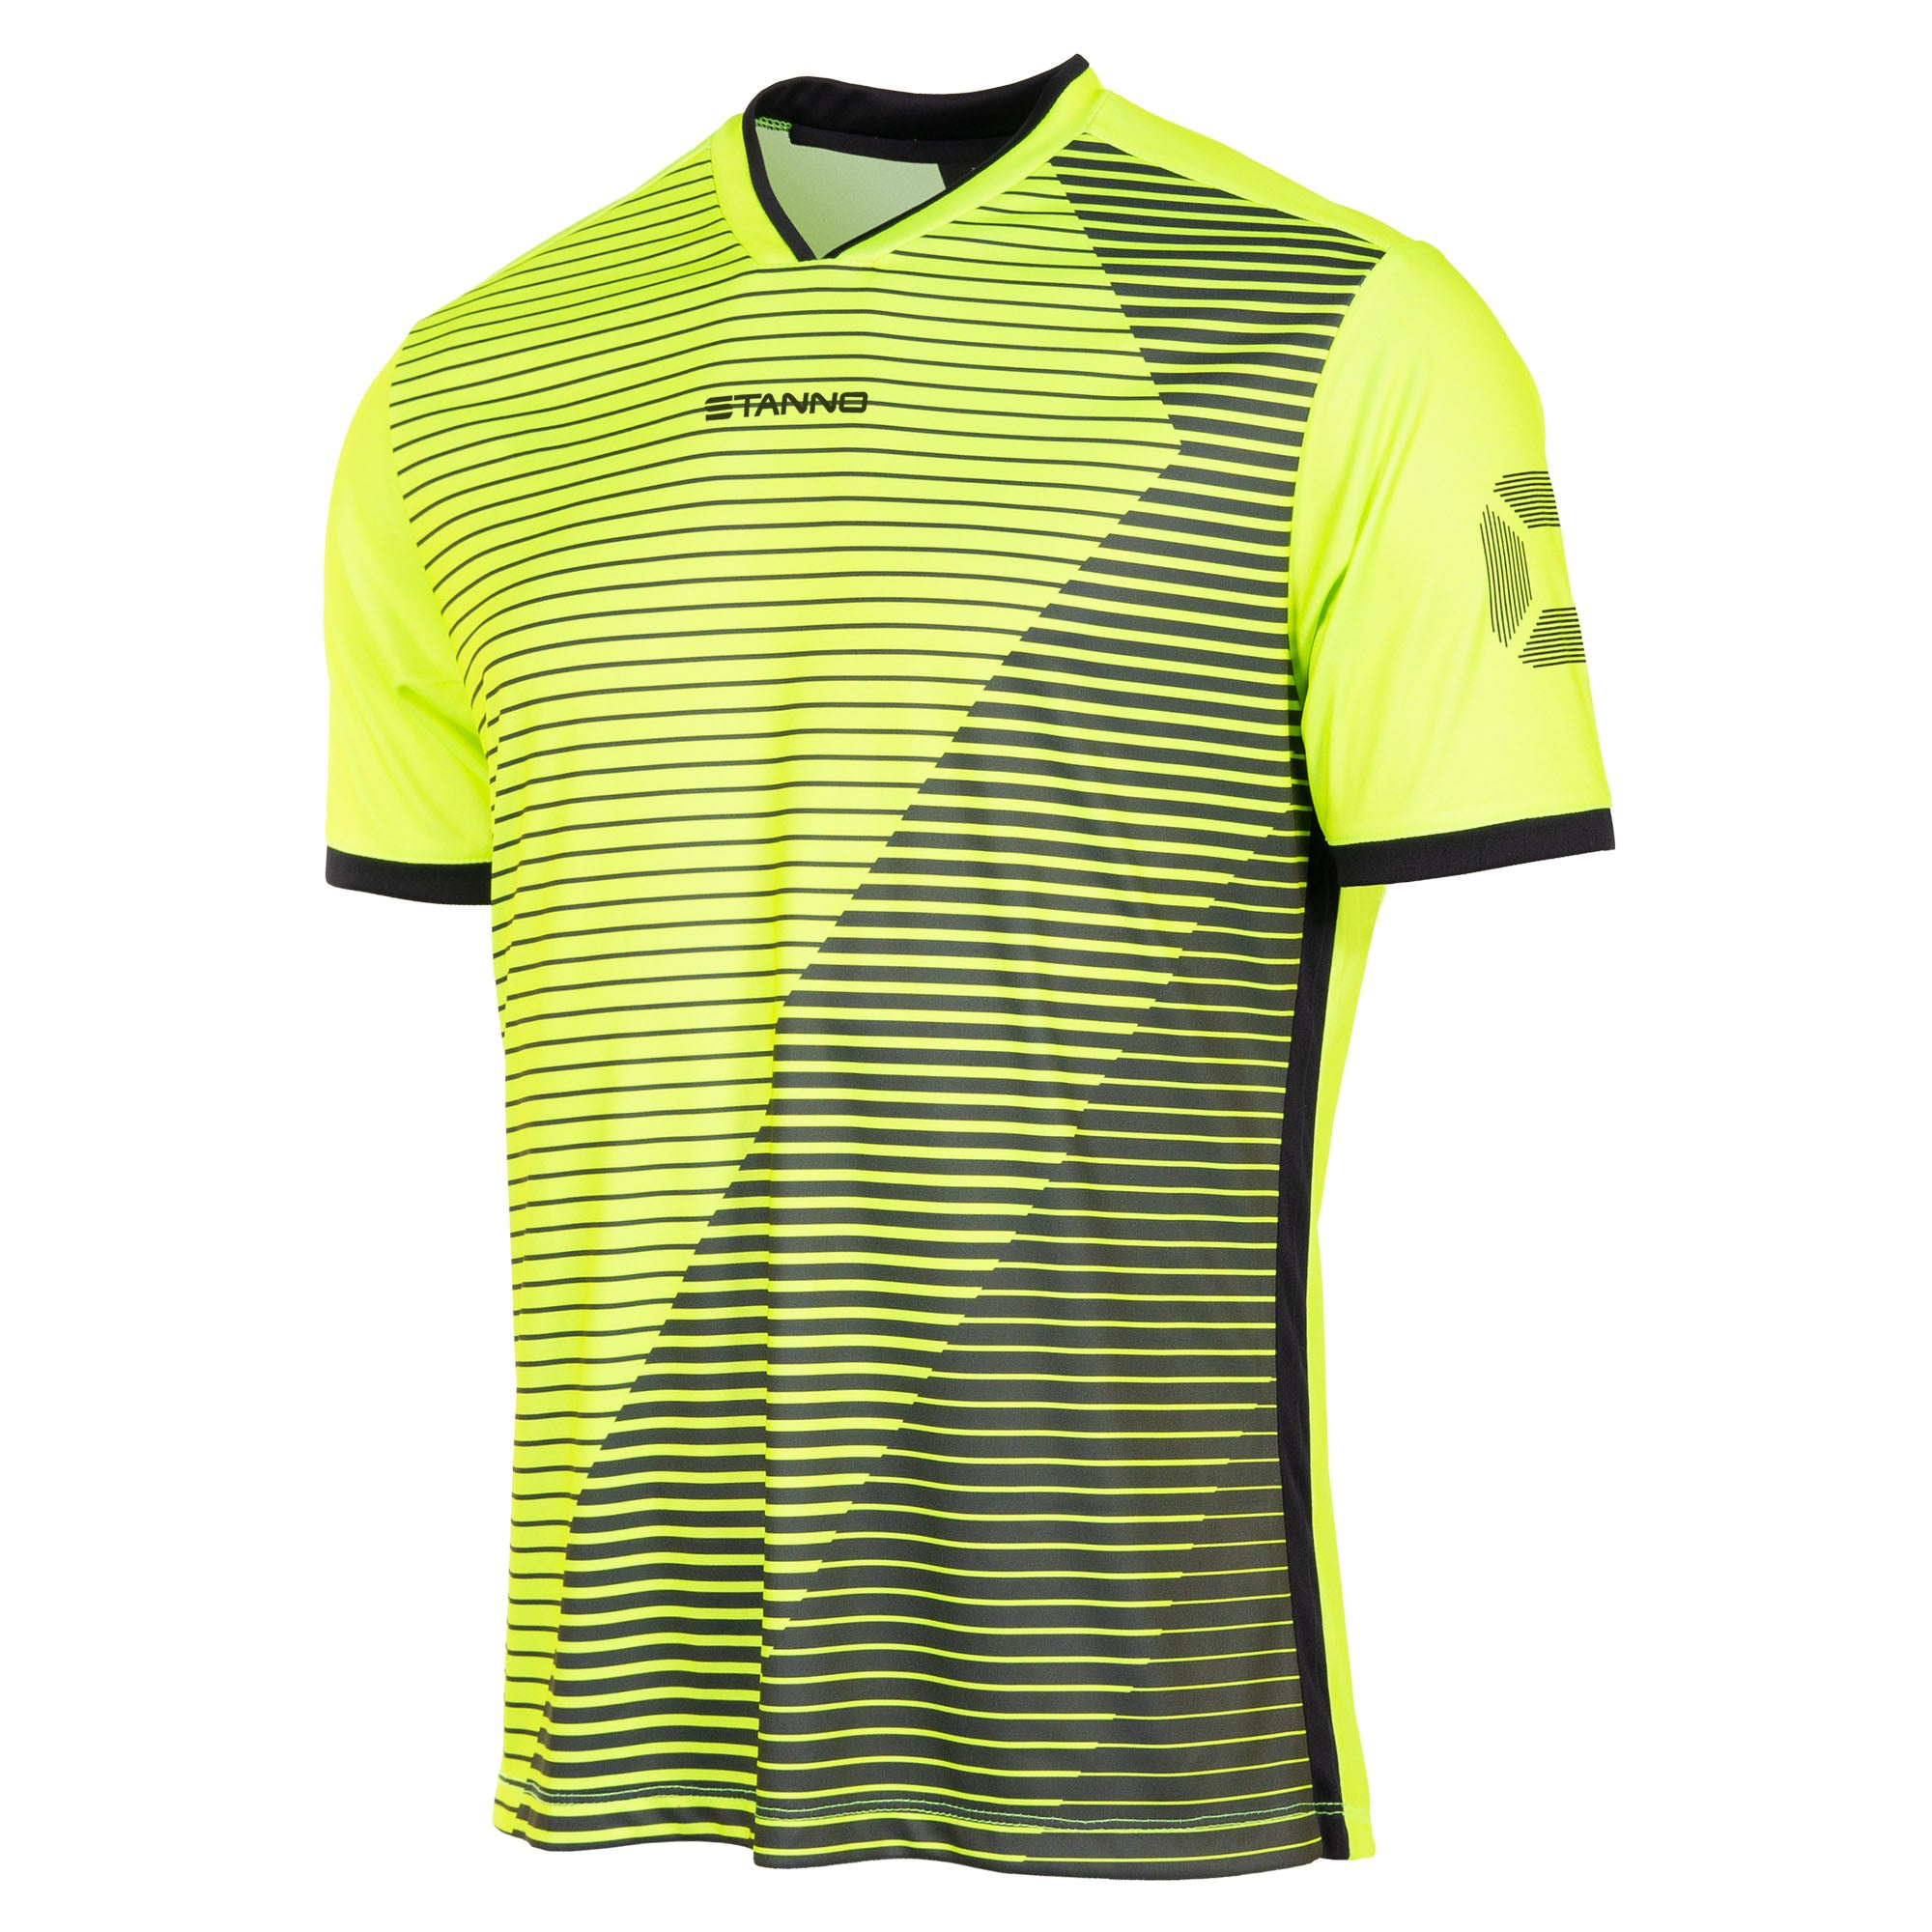 Stanno Rush Limited edition short sleeved jersey in neon yellow with black Striped graphic across the chest. Stadium logo on the sleeve. V-neck collar. Black contrast cuff and side panel